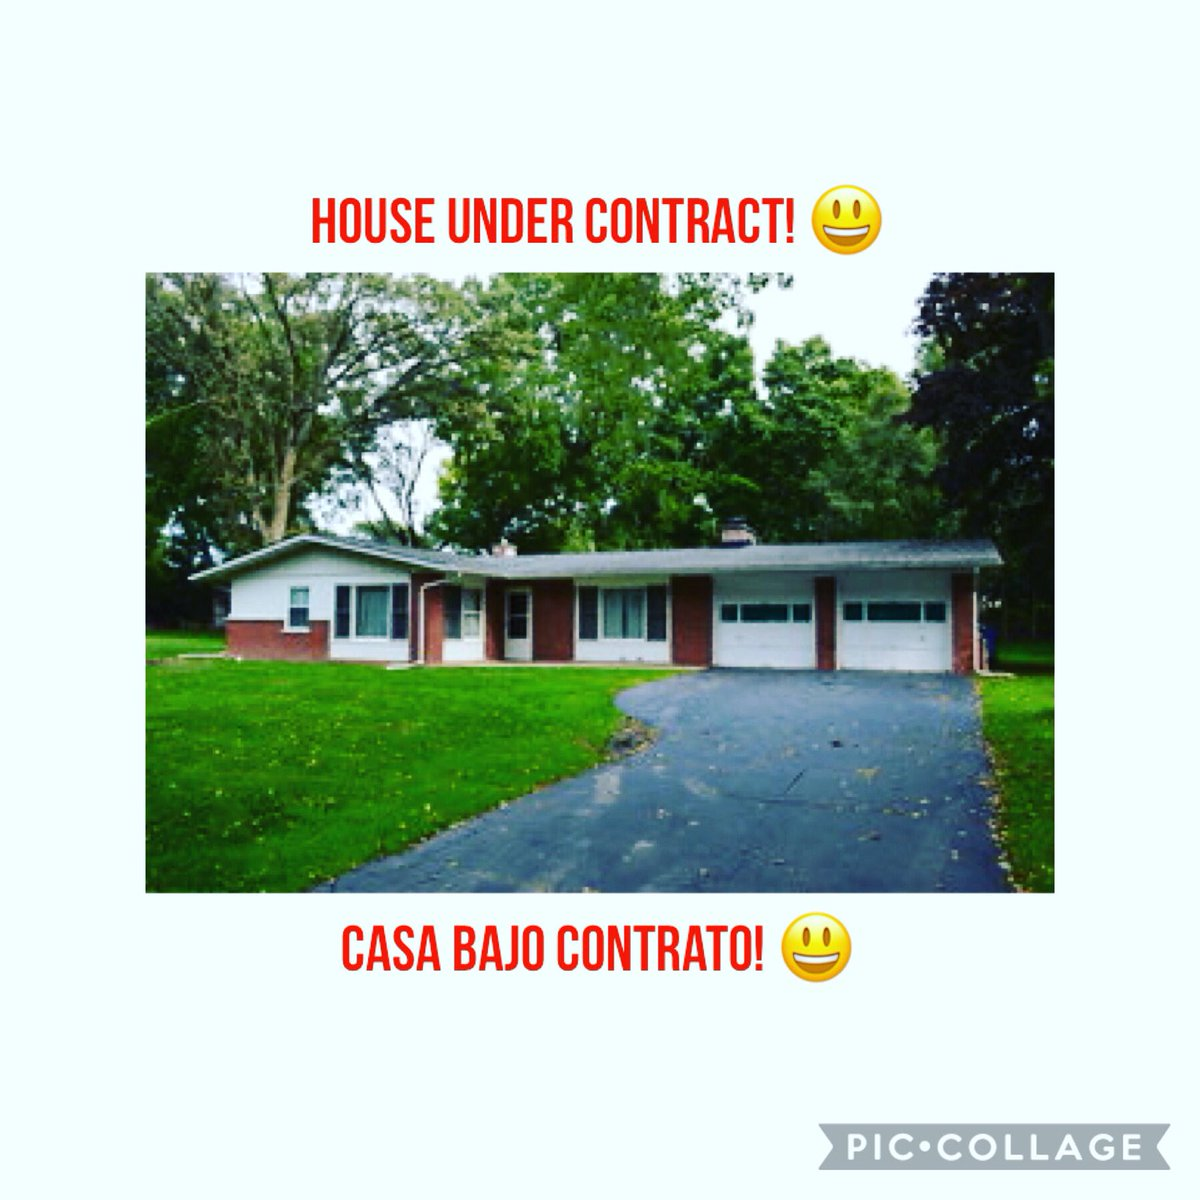 Another family found their new home!   Otra familia encontró su nuevo hogar! #undercontract #buyorsell #happyfamily  #Realestate #Realtor  #Realestateinvestment  #AmericanDreamRealty #Makingyouramericandreamareality #Haciendotusueñounarealidadpic.twitter.com/Hb30nTBld1